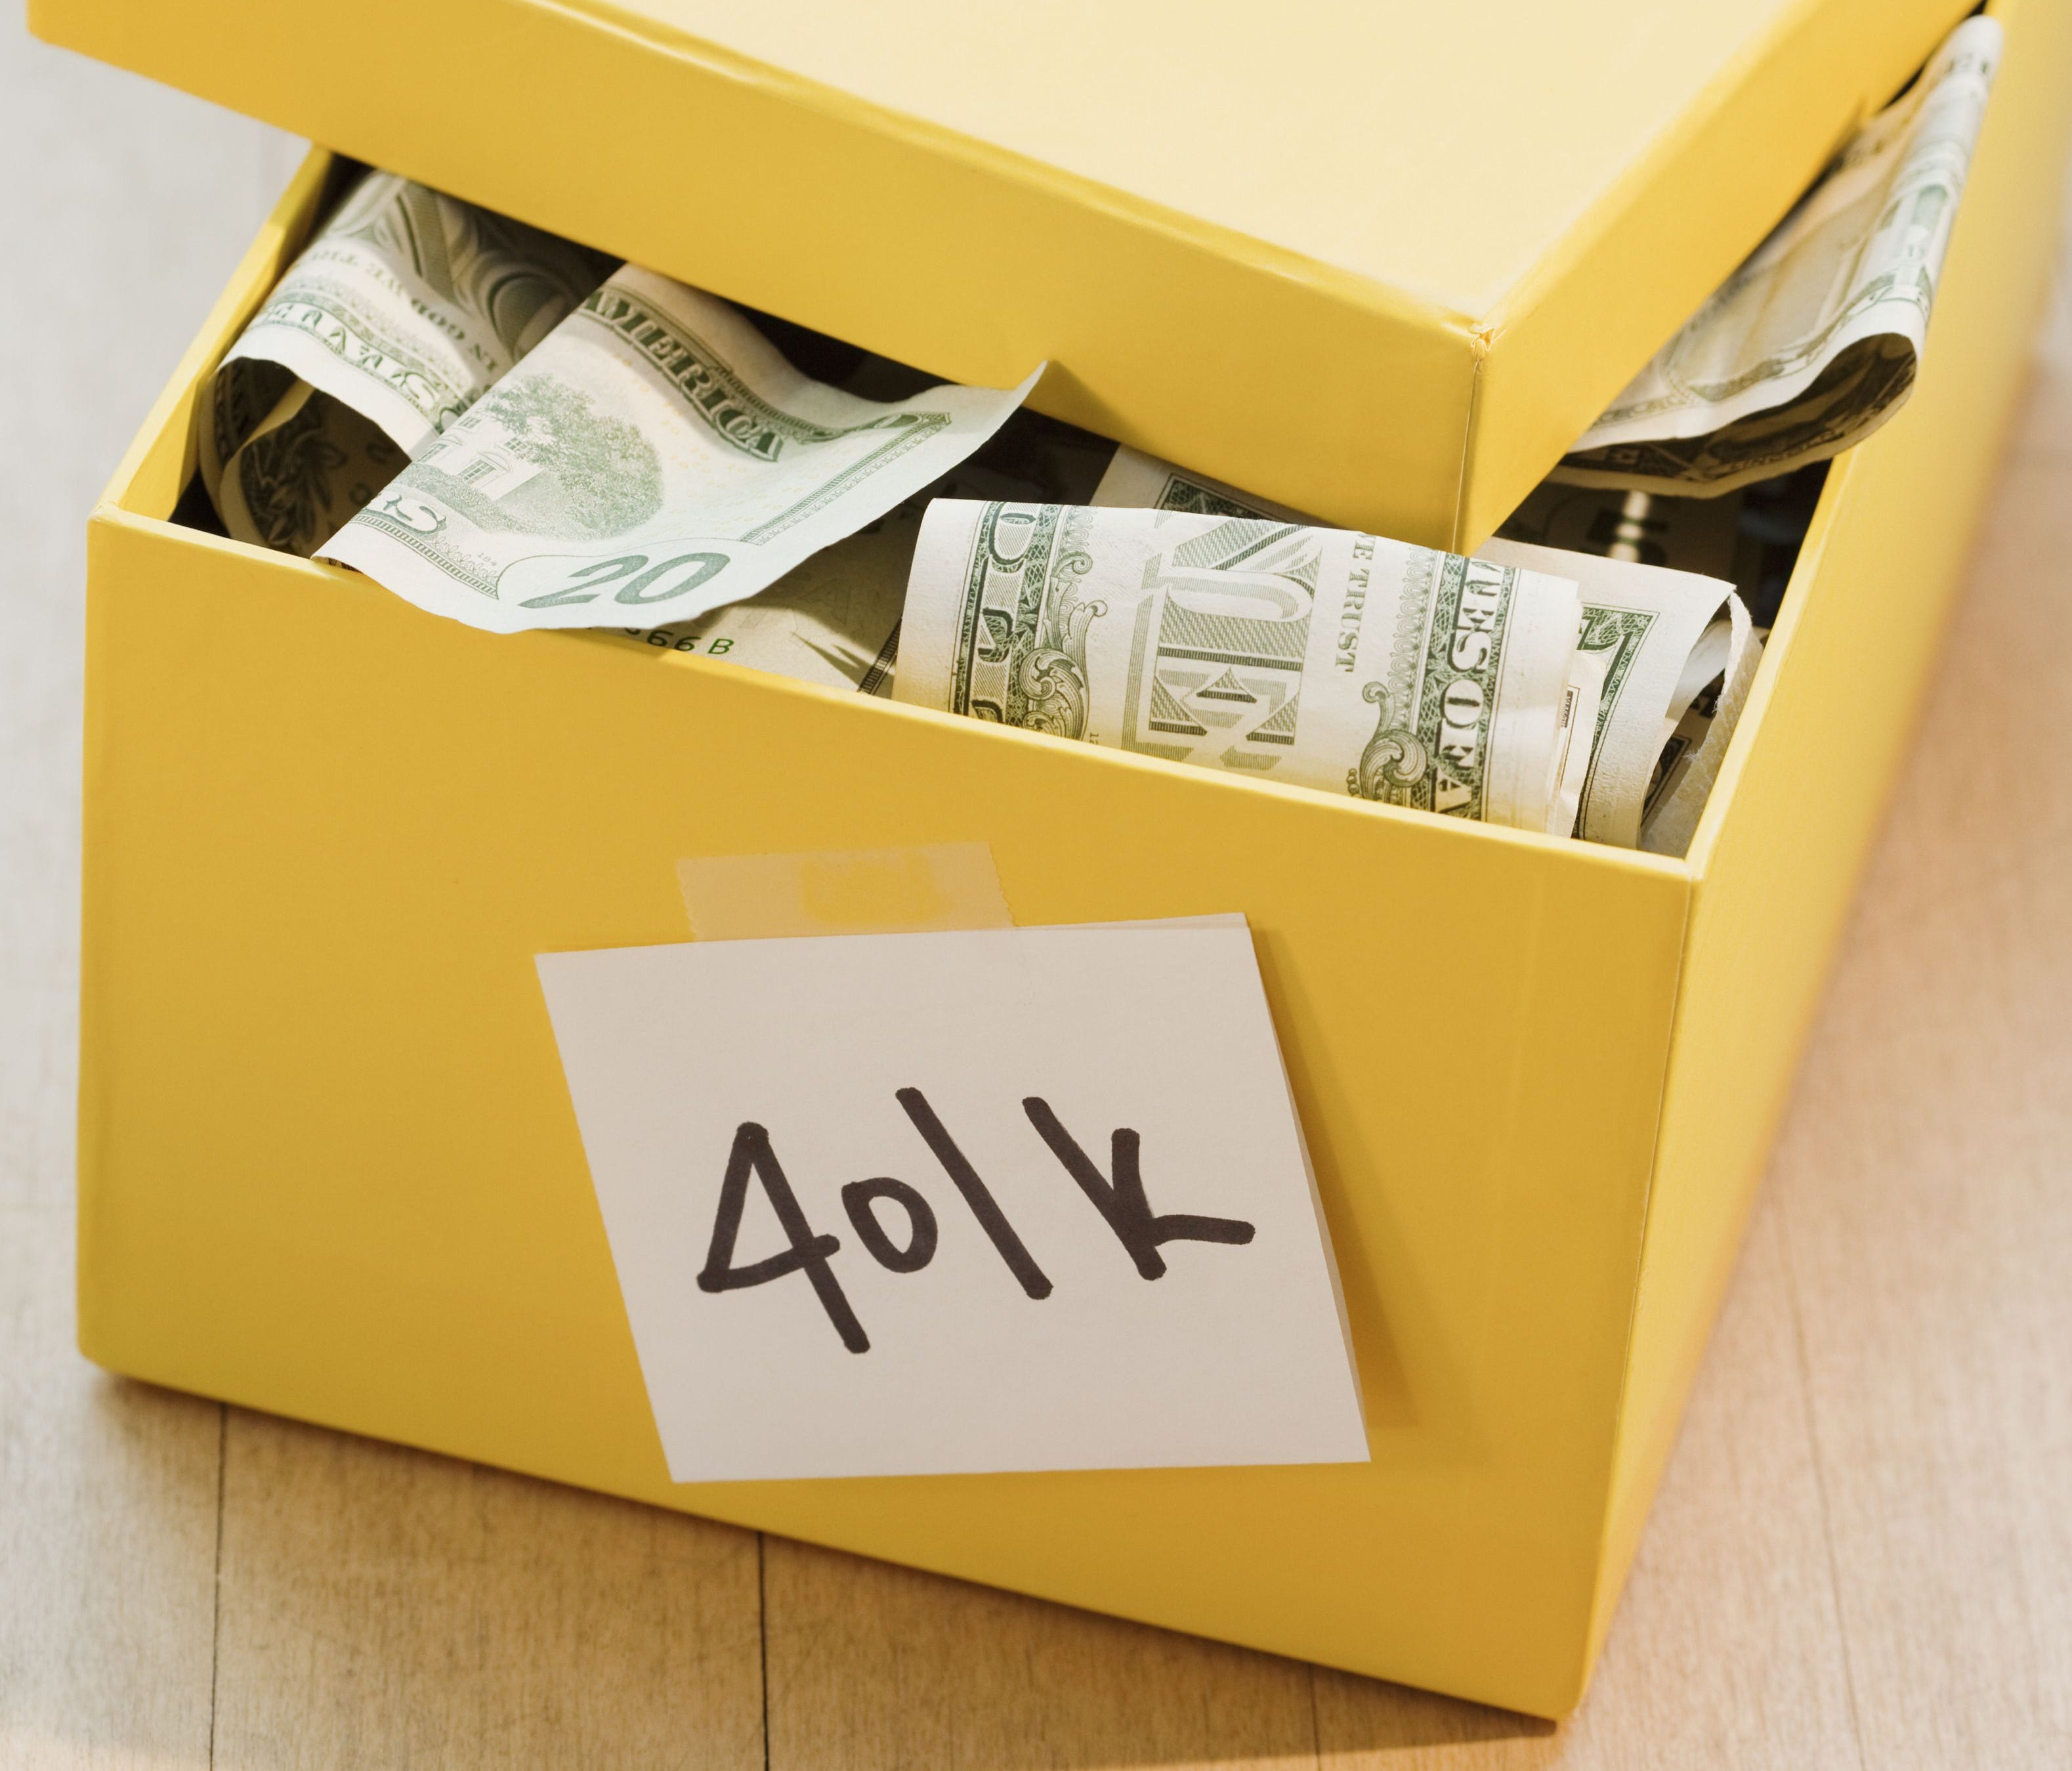 When choosing funds for your 401(k) plan be sure to check fees.